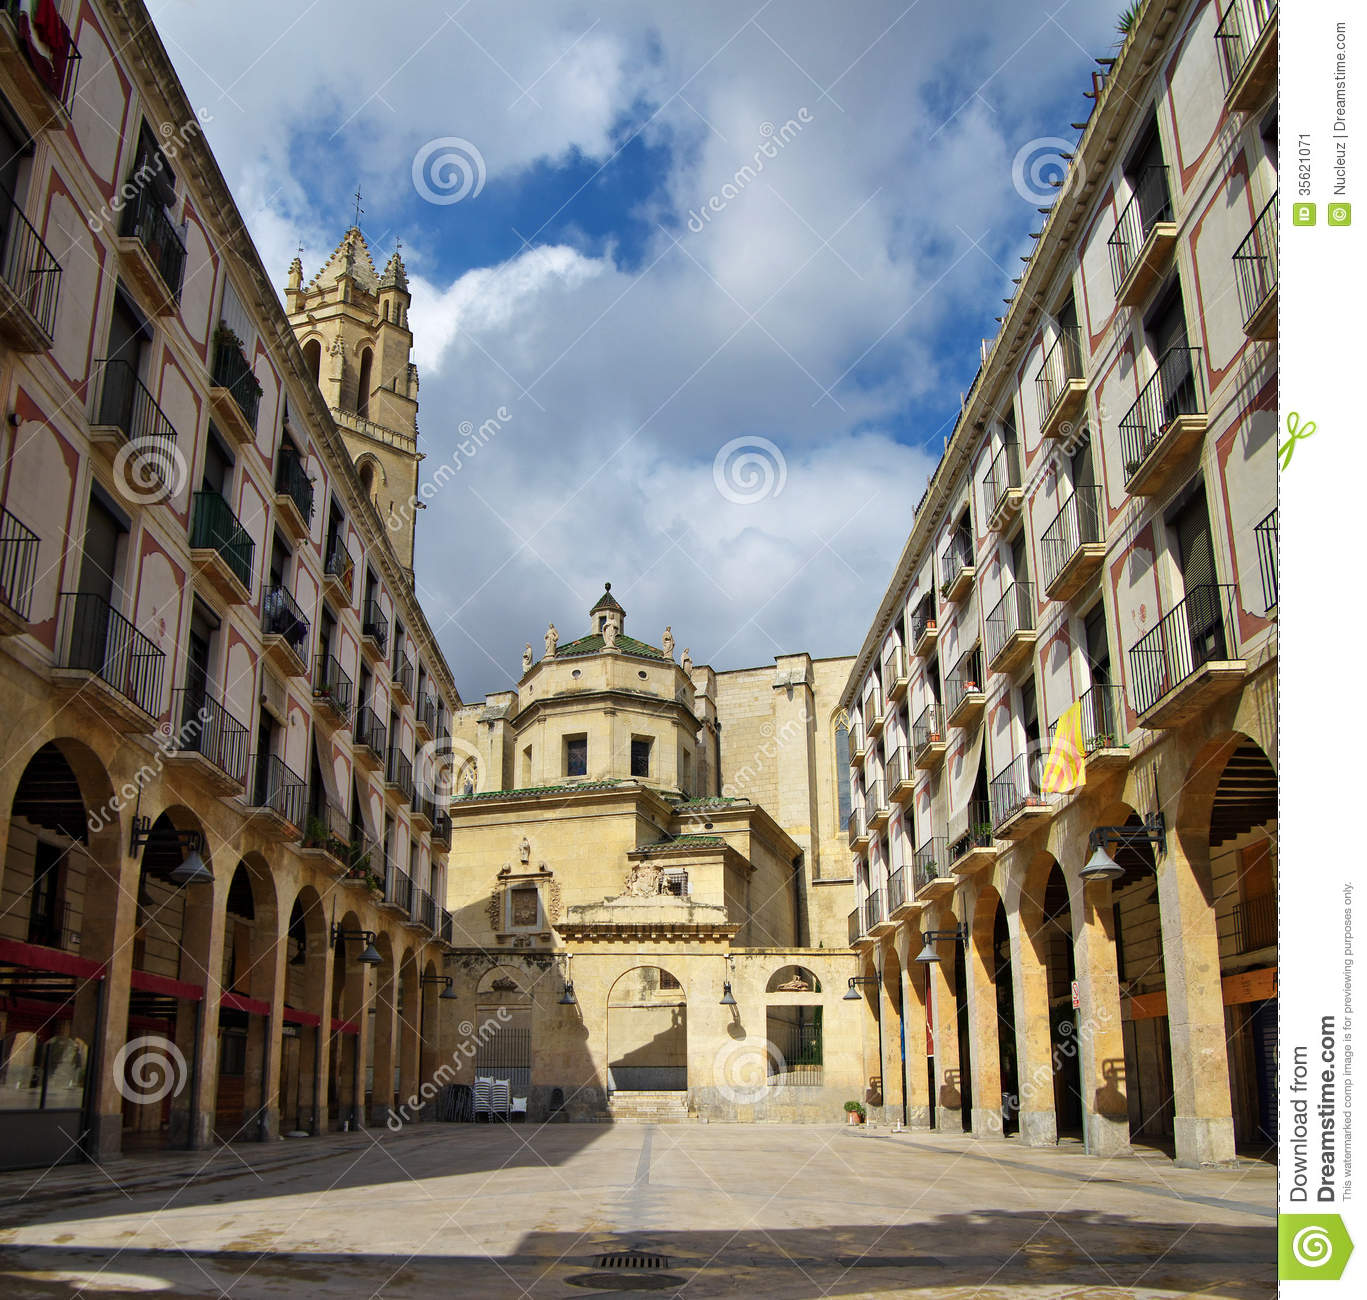 Reus Spain  City pictures : Rare cathedral placed at the center of Reus, Spain.